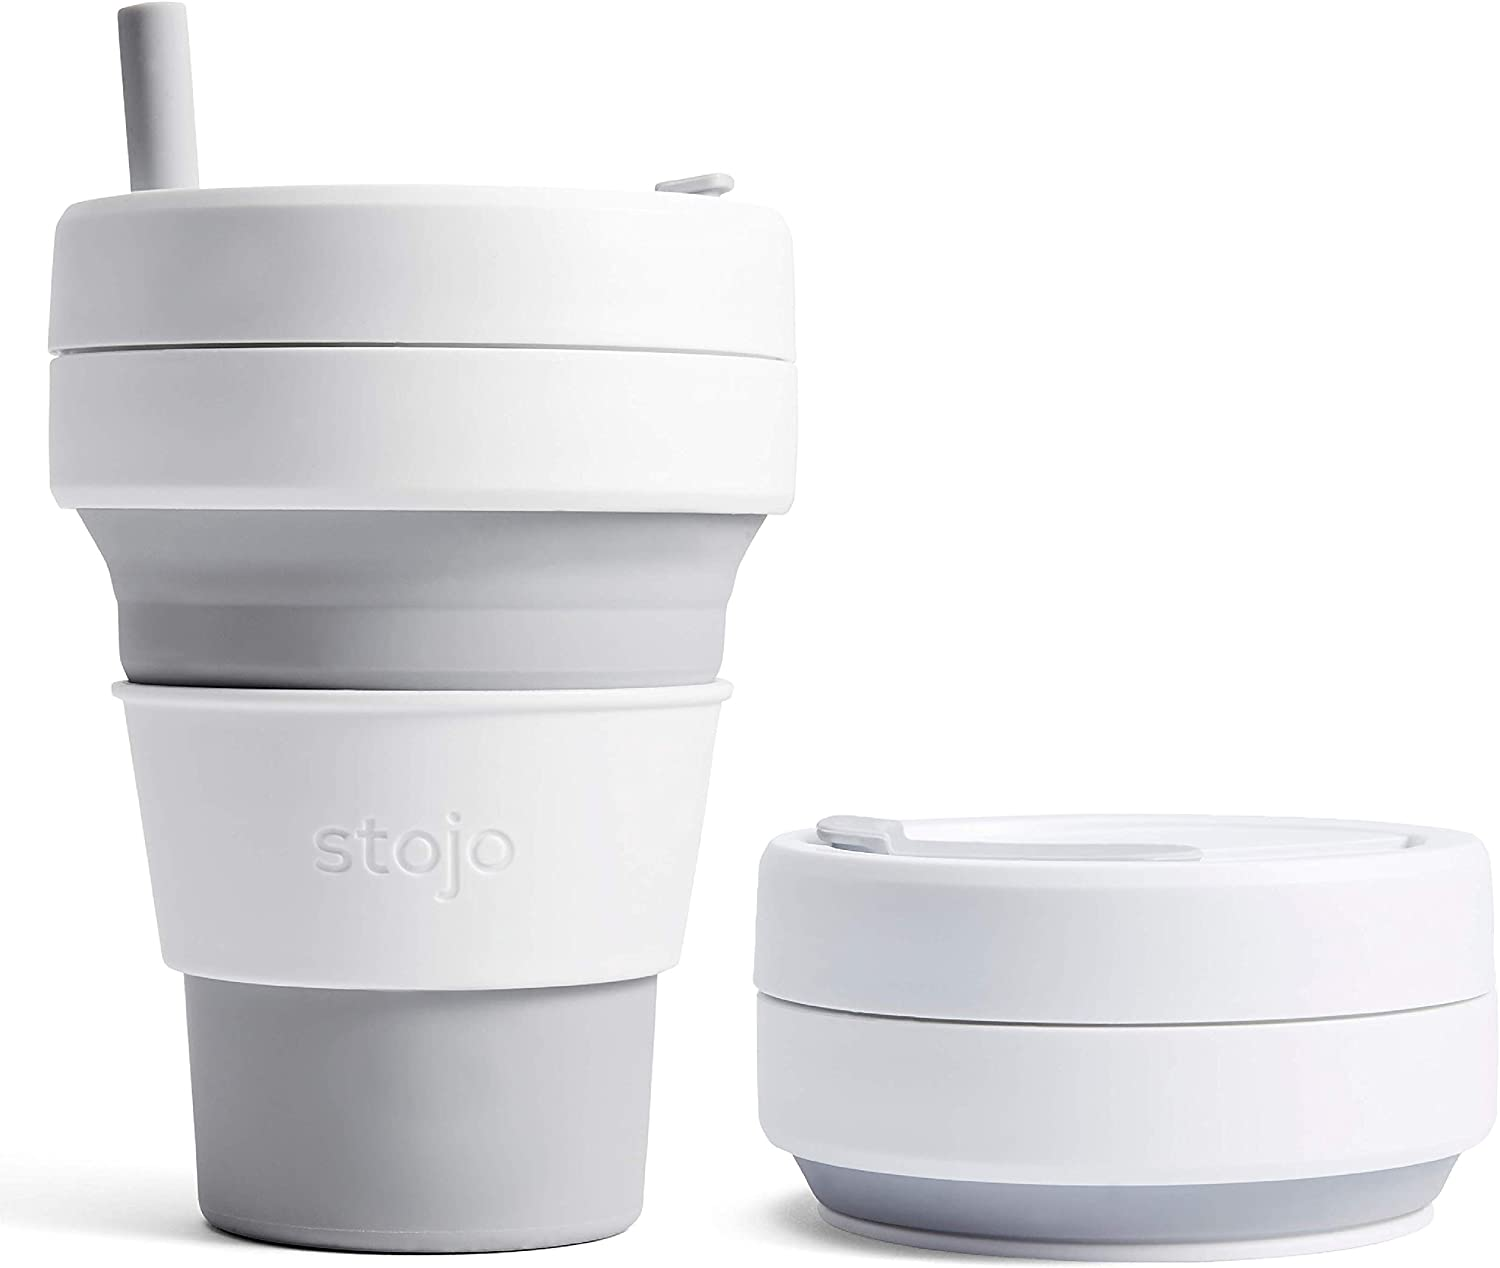 Stojo On The Go Collapsible Coffee Cup   Pocket Size Collapsible Silicone Travel Cup   Brooklyn Collection 12oz 355ml Coral